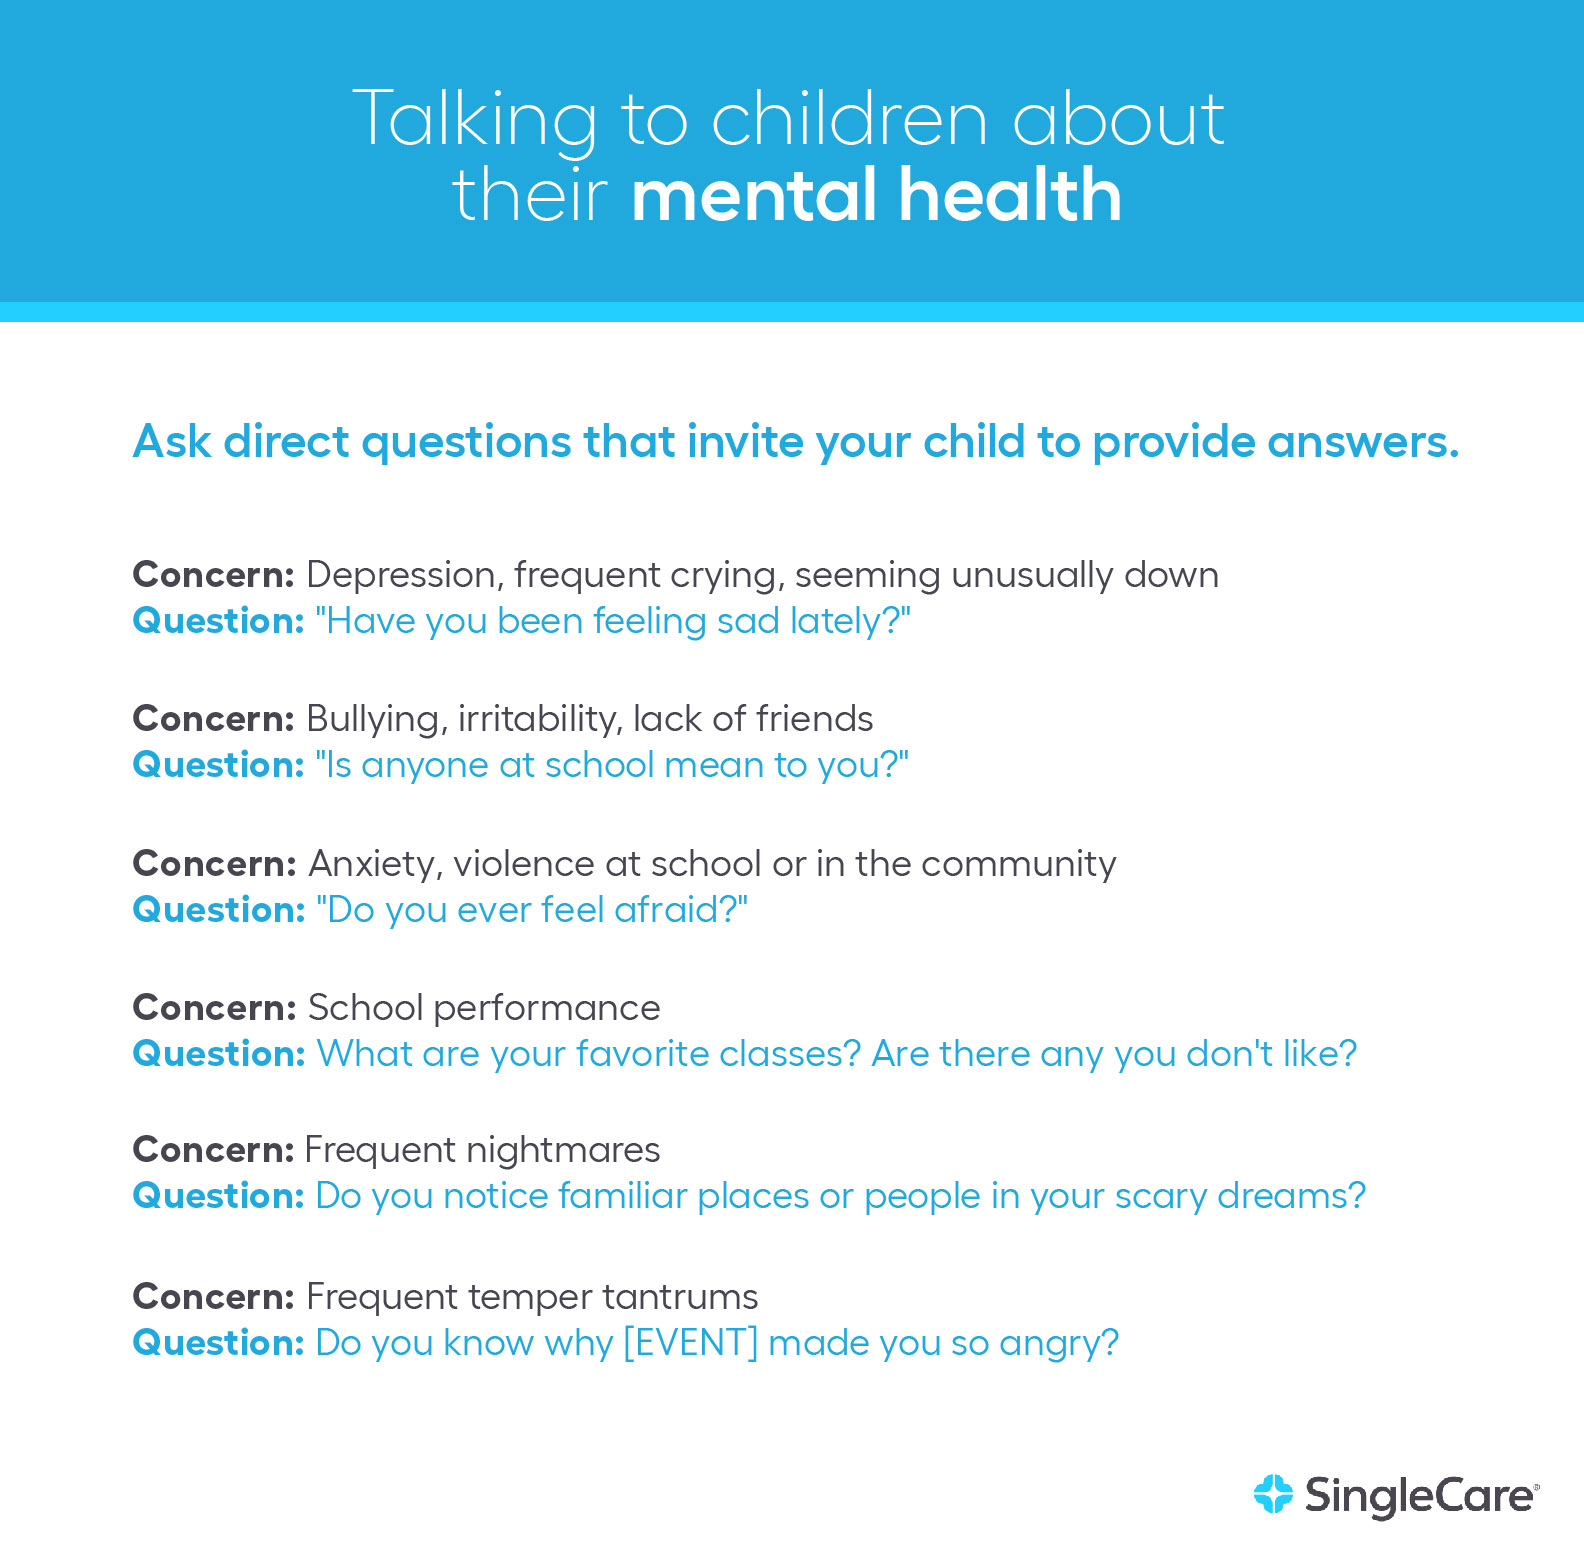 talking to children about their mental health